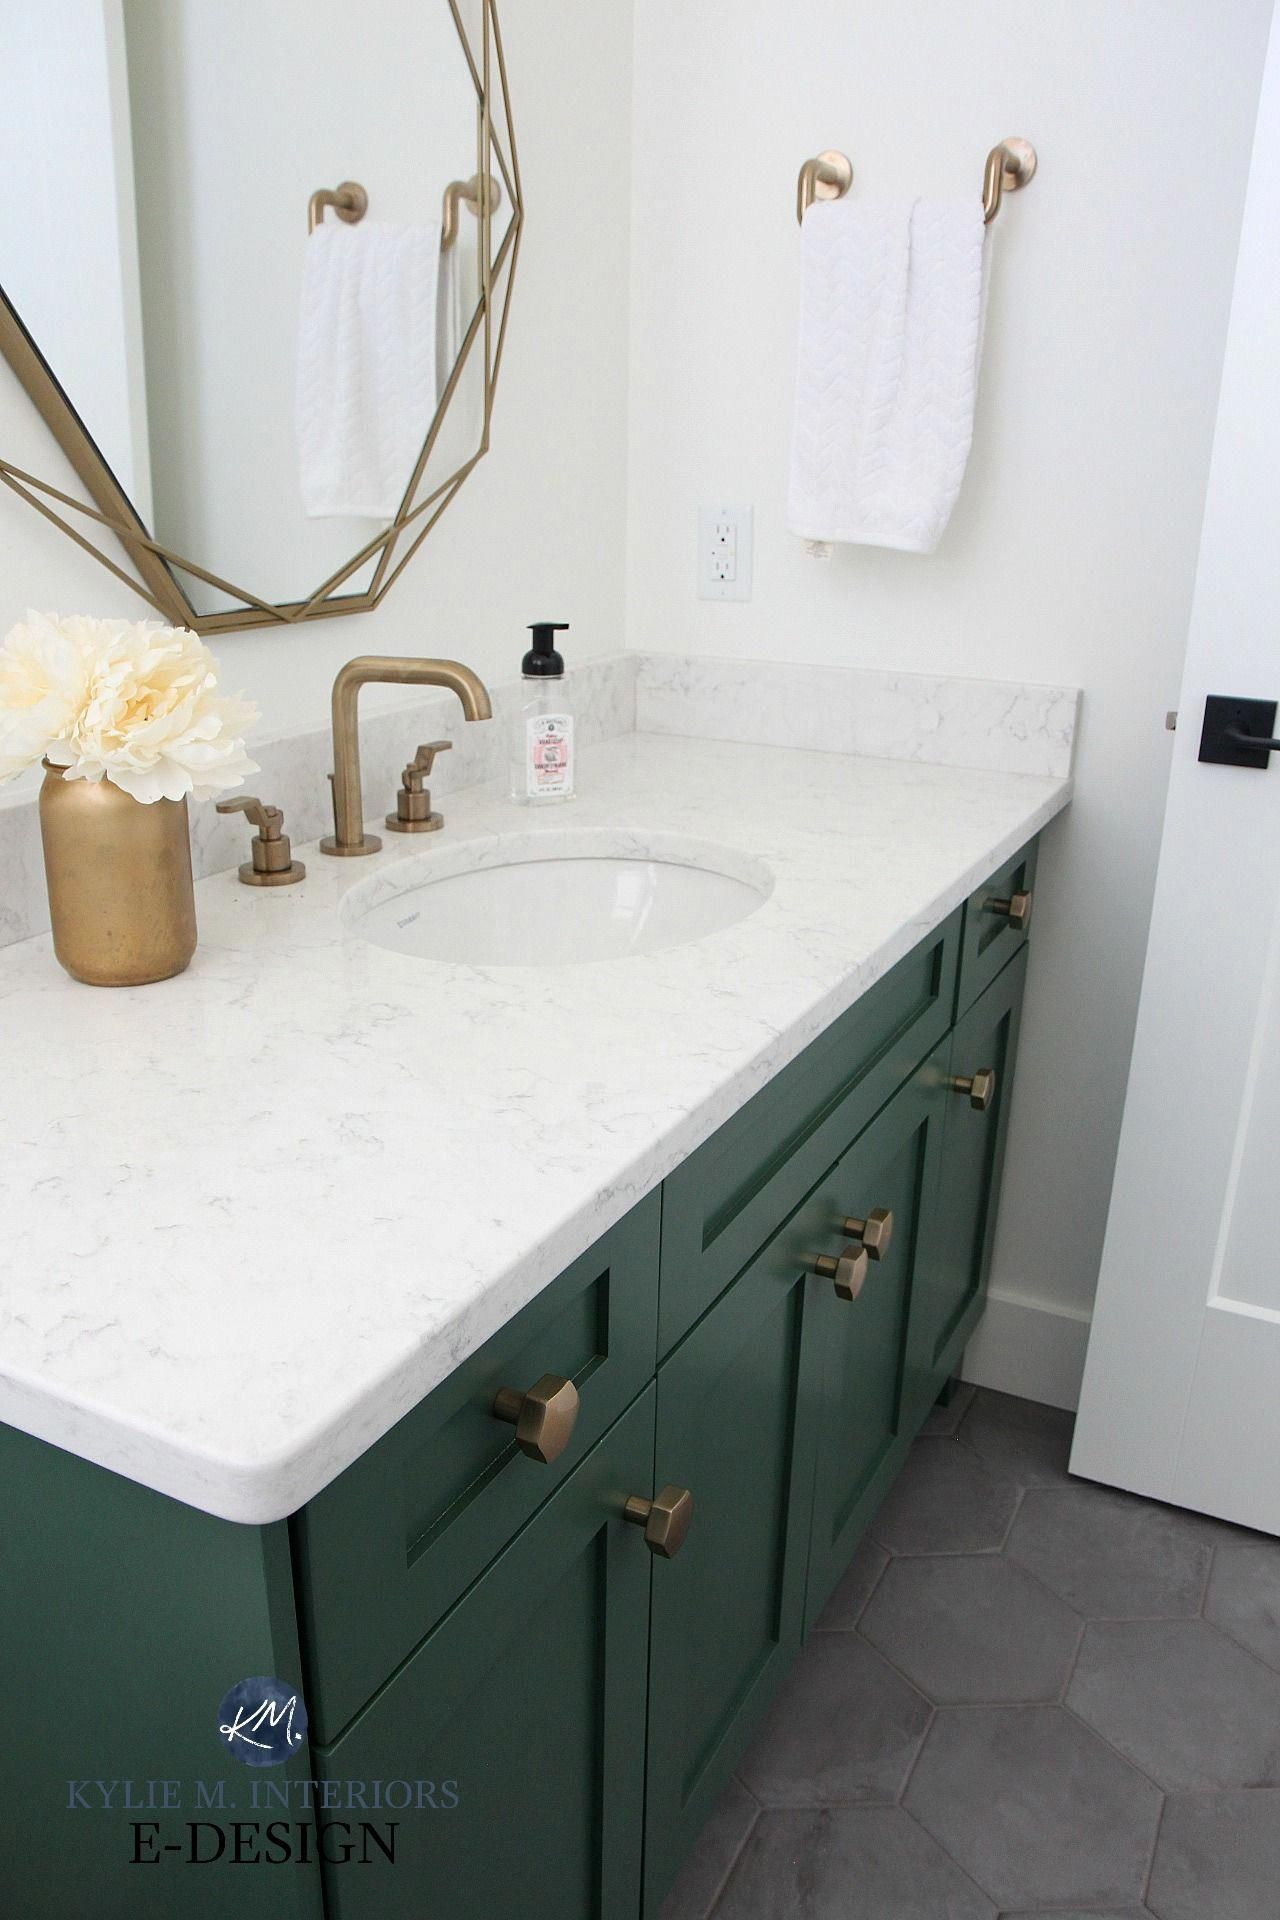 Once You Have Actually Chosen That You Want To Acquire A Brand New Restroom Shower Stall Along With How Painted Vanity Bathroom Green Bathroom Painted Vanity [ 1920 x 1280 Pixel ]